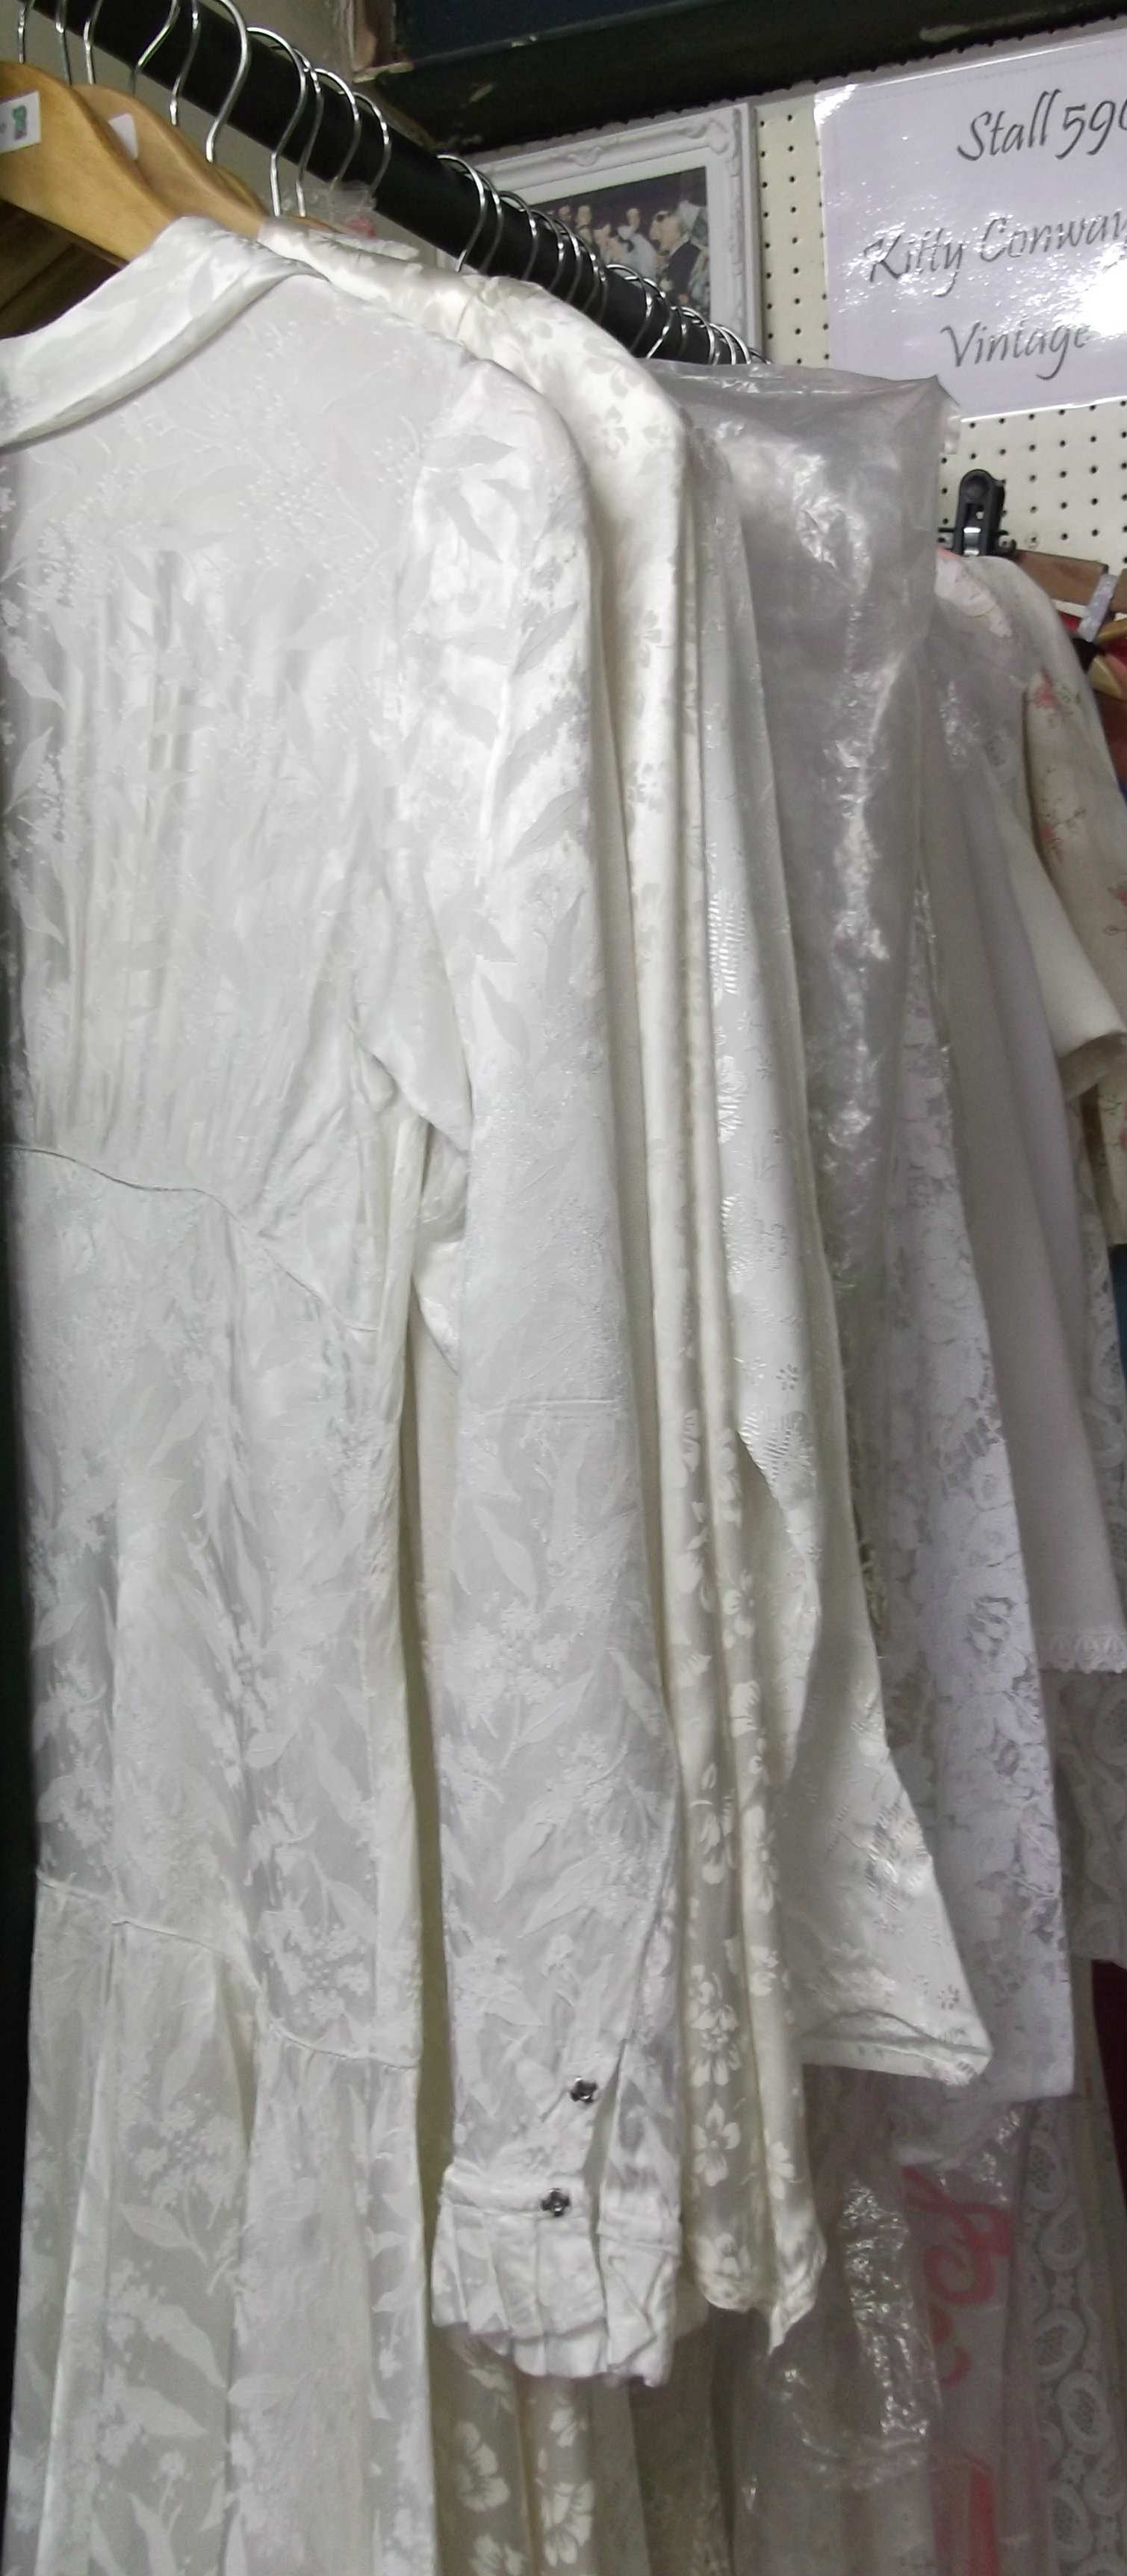 Close up of selection of 1930s to 1940s wedding dresses